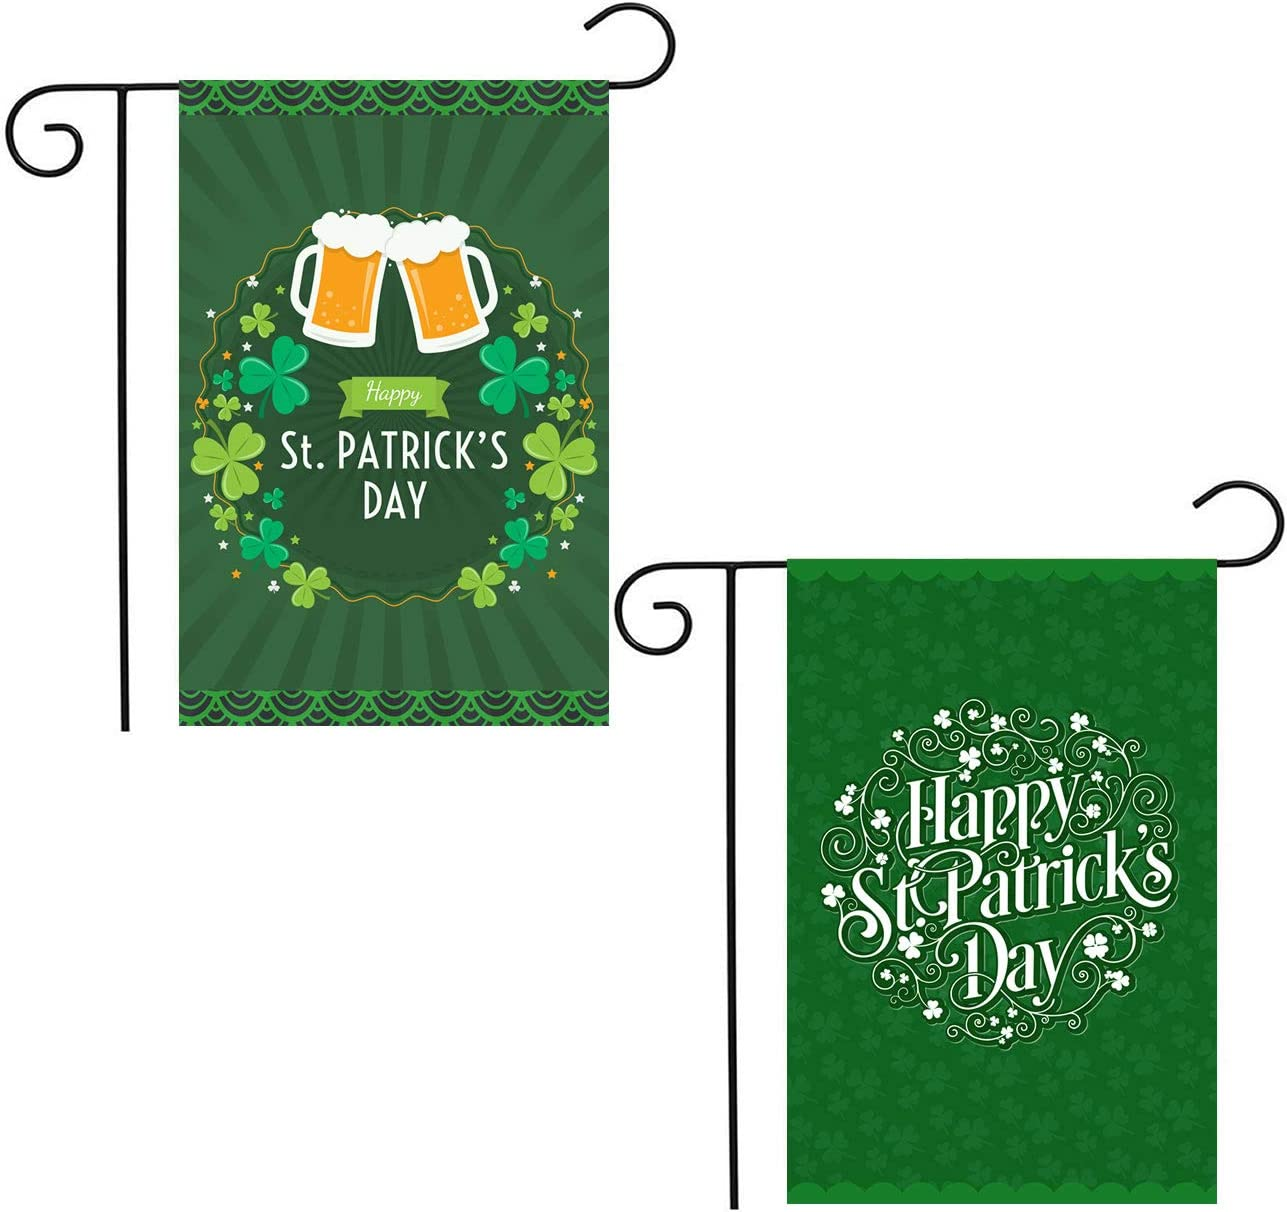 Shmbada Set of 2 Welcome St Patrick's Day Garden Flag Double Side, Outdoor Lawn Yard Farmhouse Decoration, Irish Shamrock Background Holiday Lanes Green Beer Accessories Decor, 12 x 18 Inch, 2 Pack